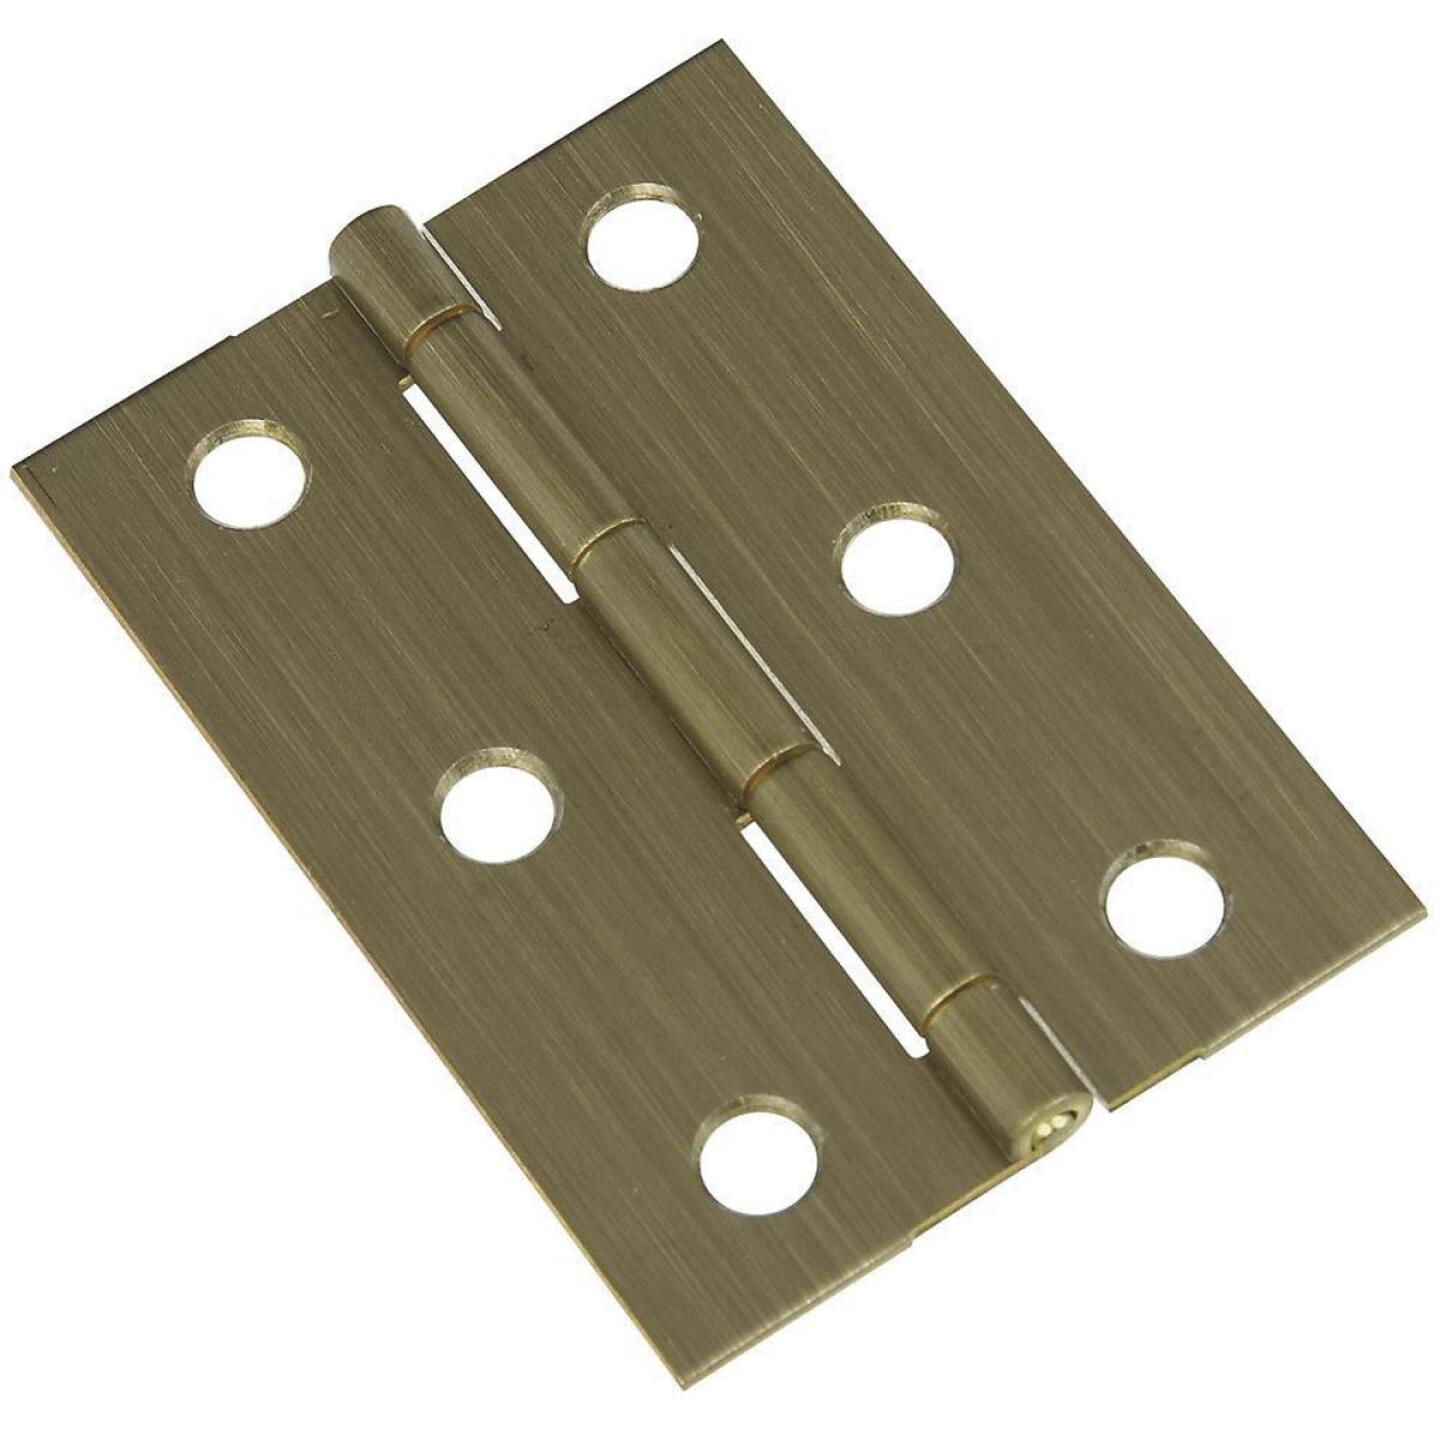 National 1-3/4 In. x 2-1/2 In. Antique Brass Medium Decorative Hinge (2-Pack) Image 1